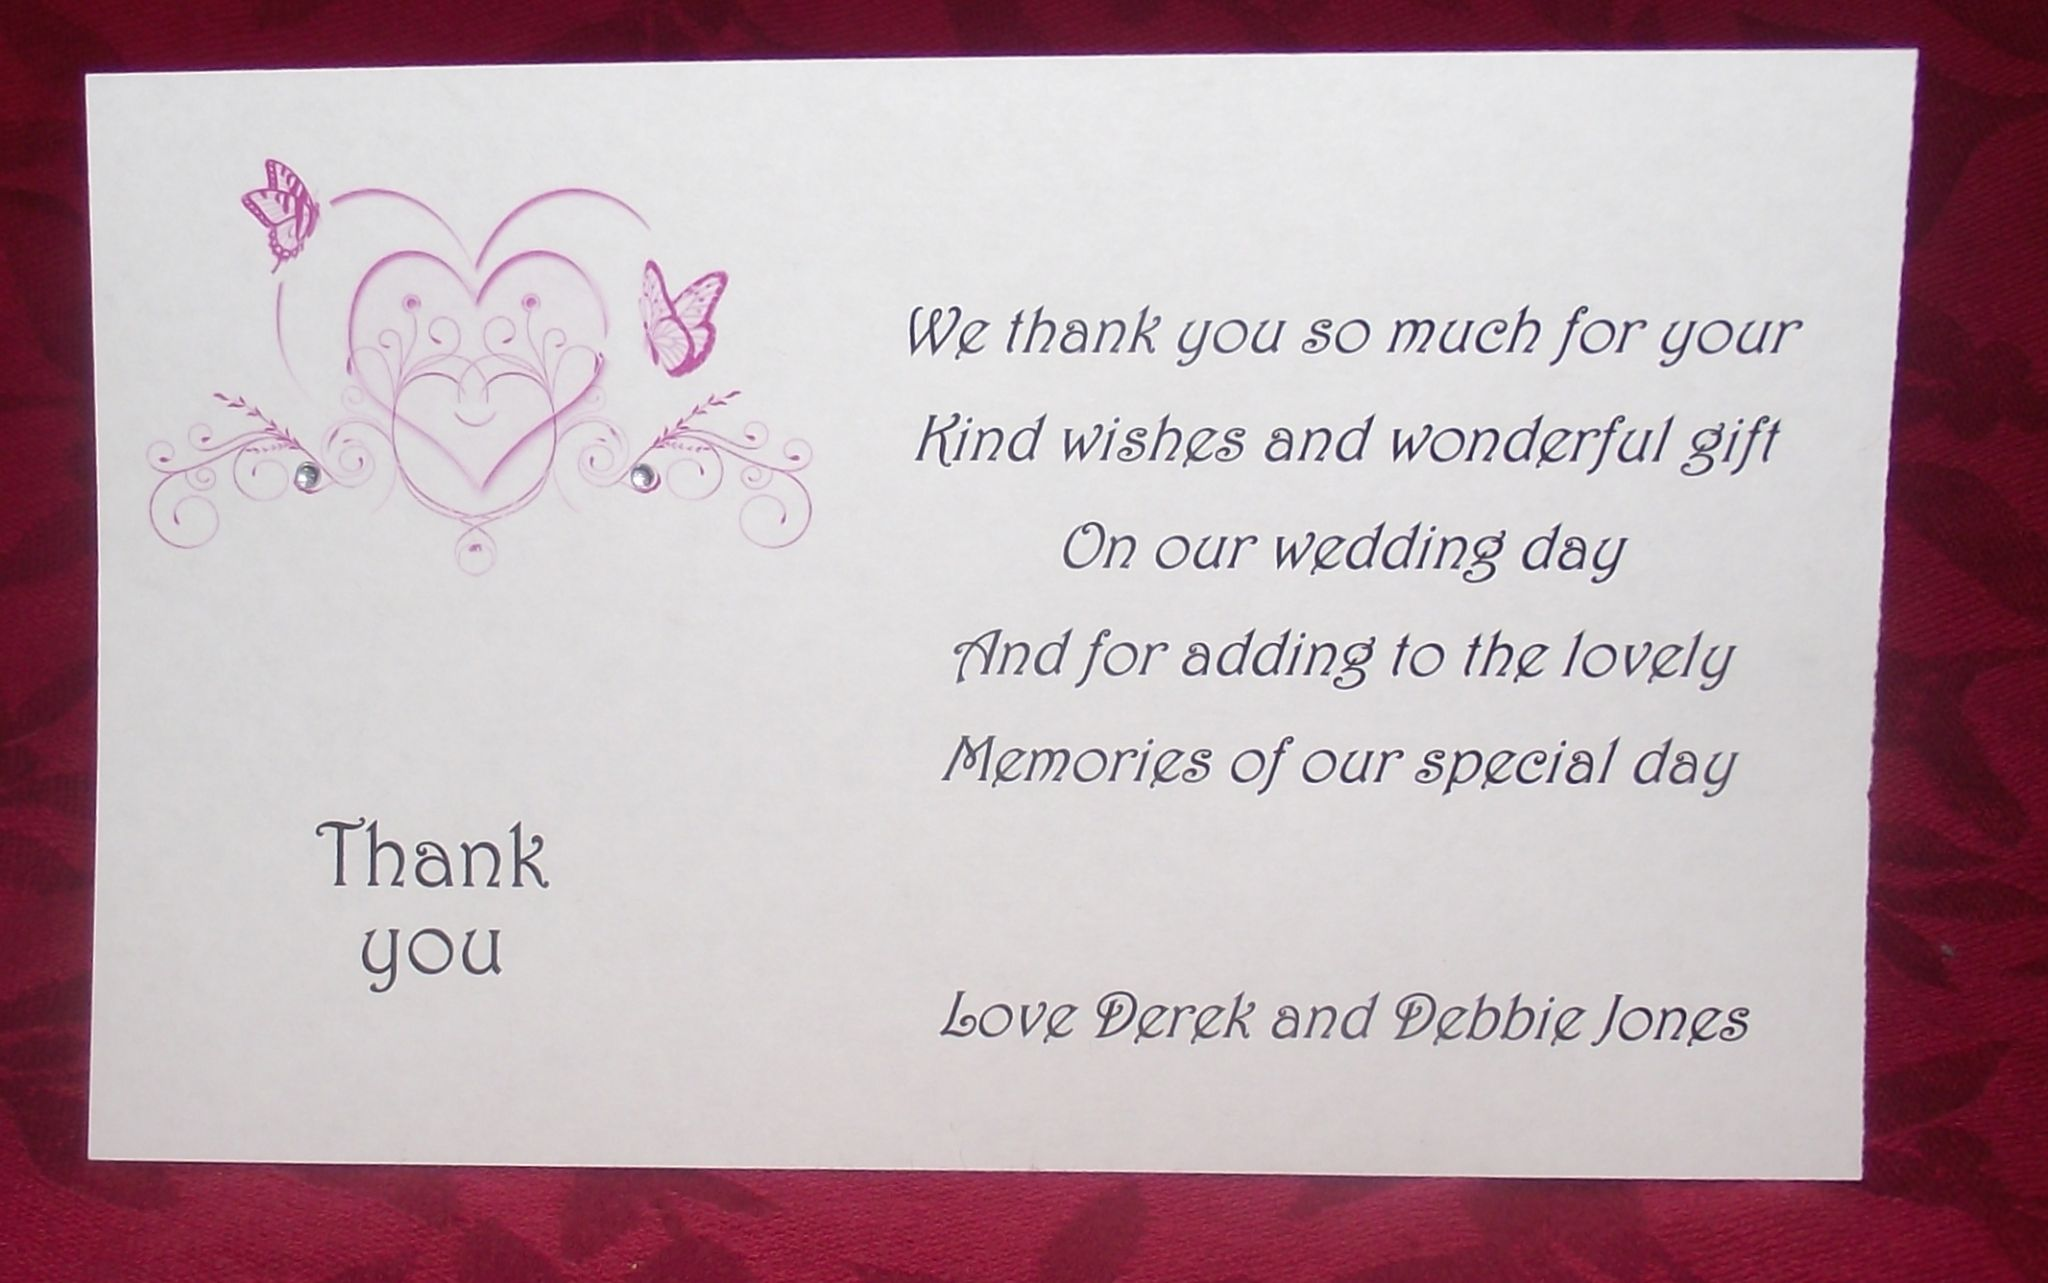 Thank you gift cards wedding personalised printed heart butterfly thank you gift cards wedding personalised printed heart butterfly design various colours x 10 m4hsunfo